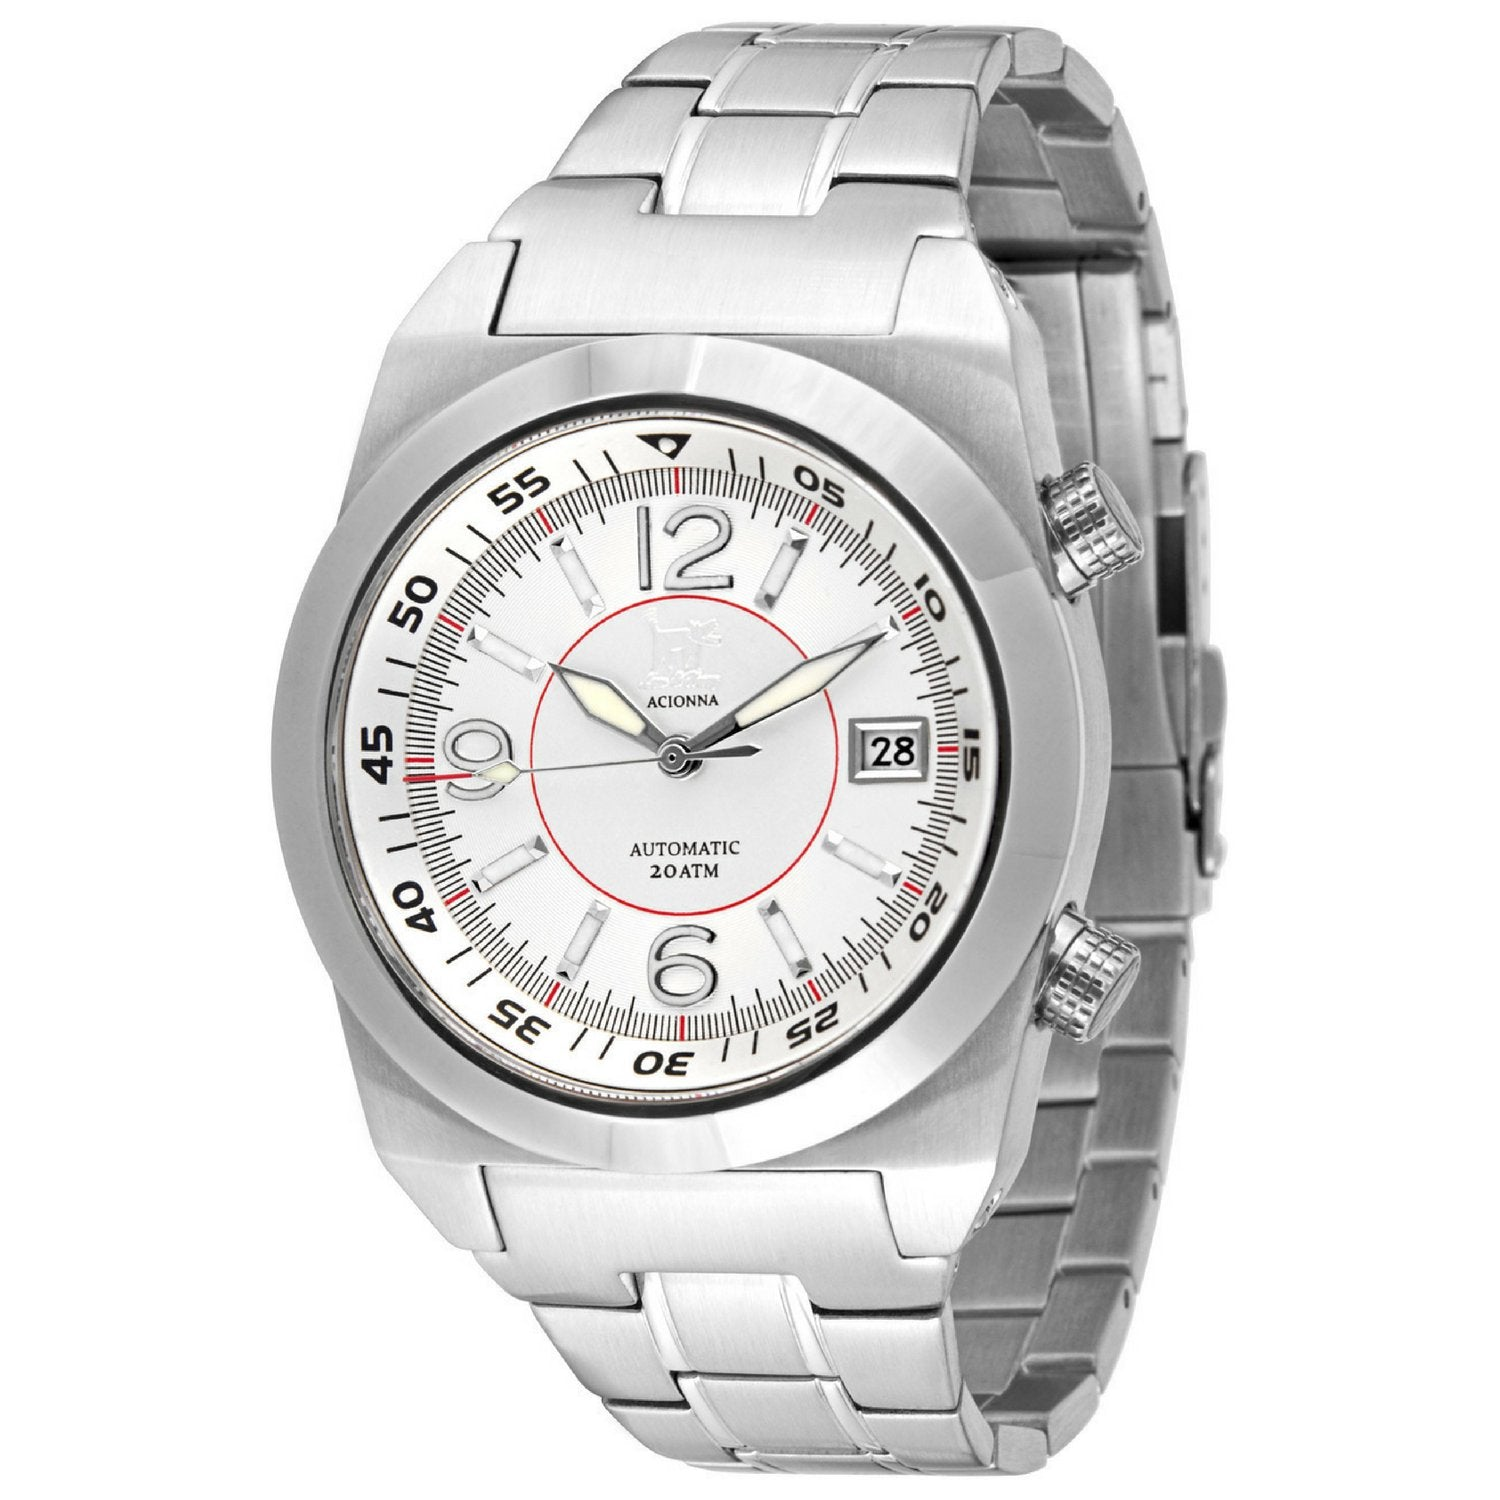 Lew and Huey Acionna Automatic Watch (White & Red)